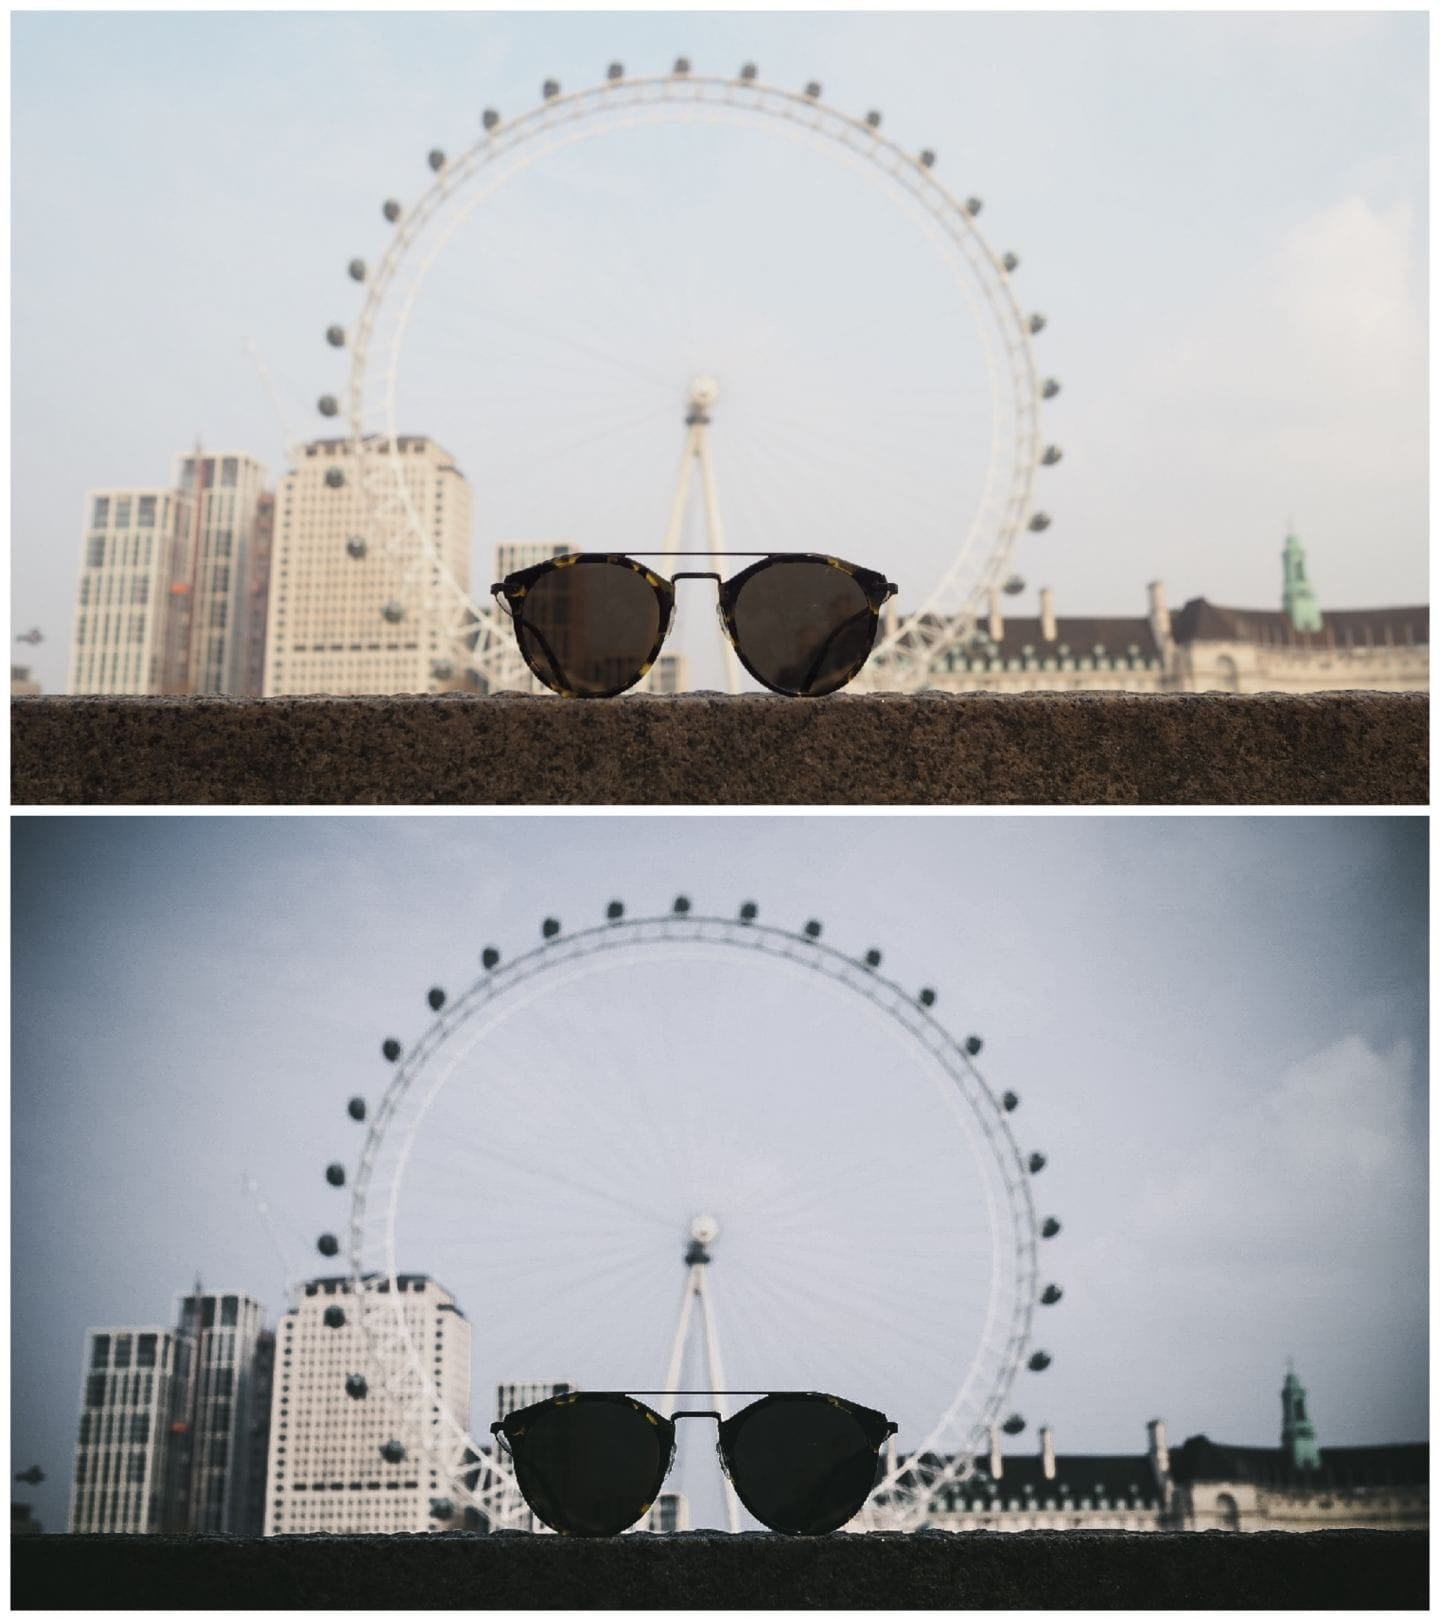 local milk free preset review sunglasses and the London eye view